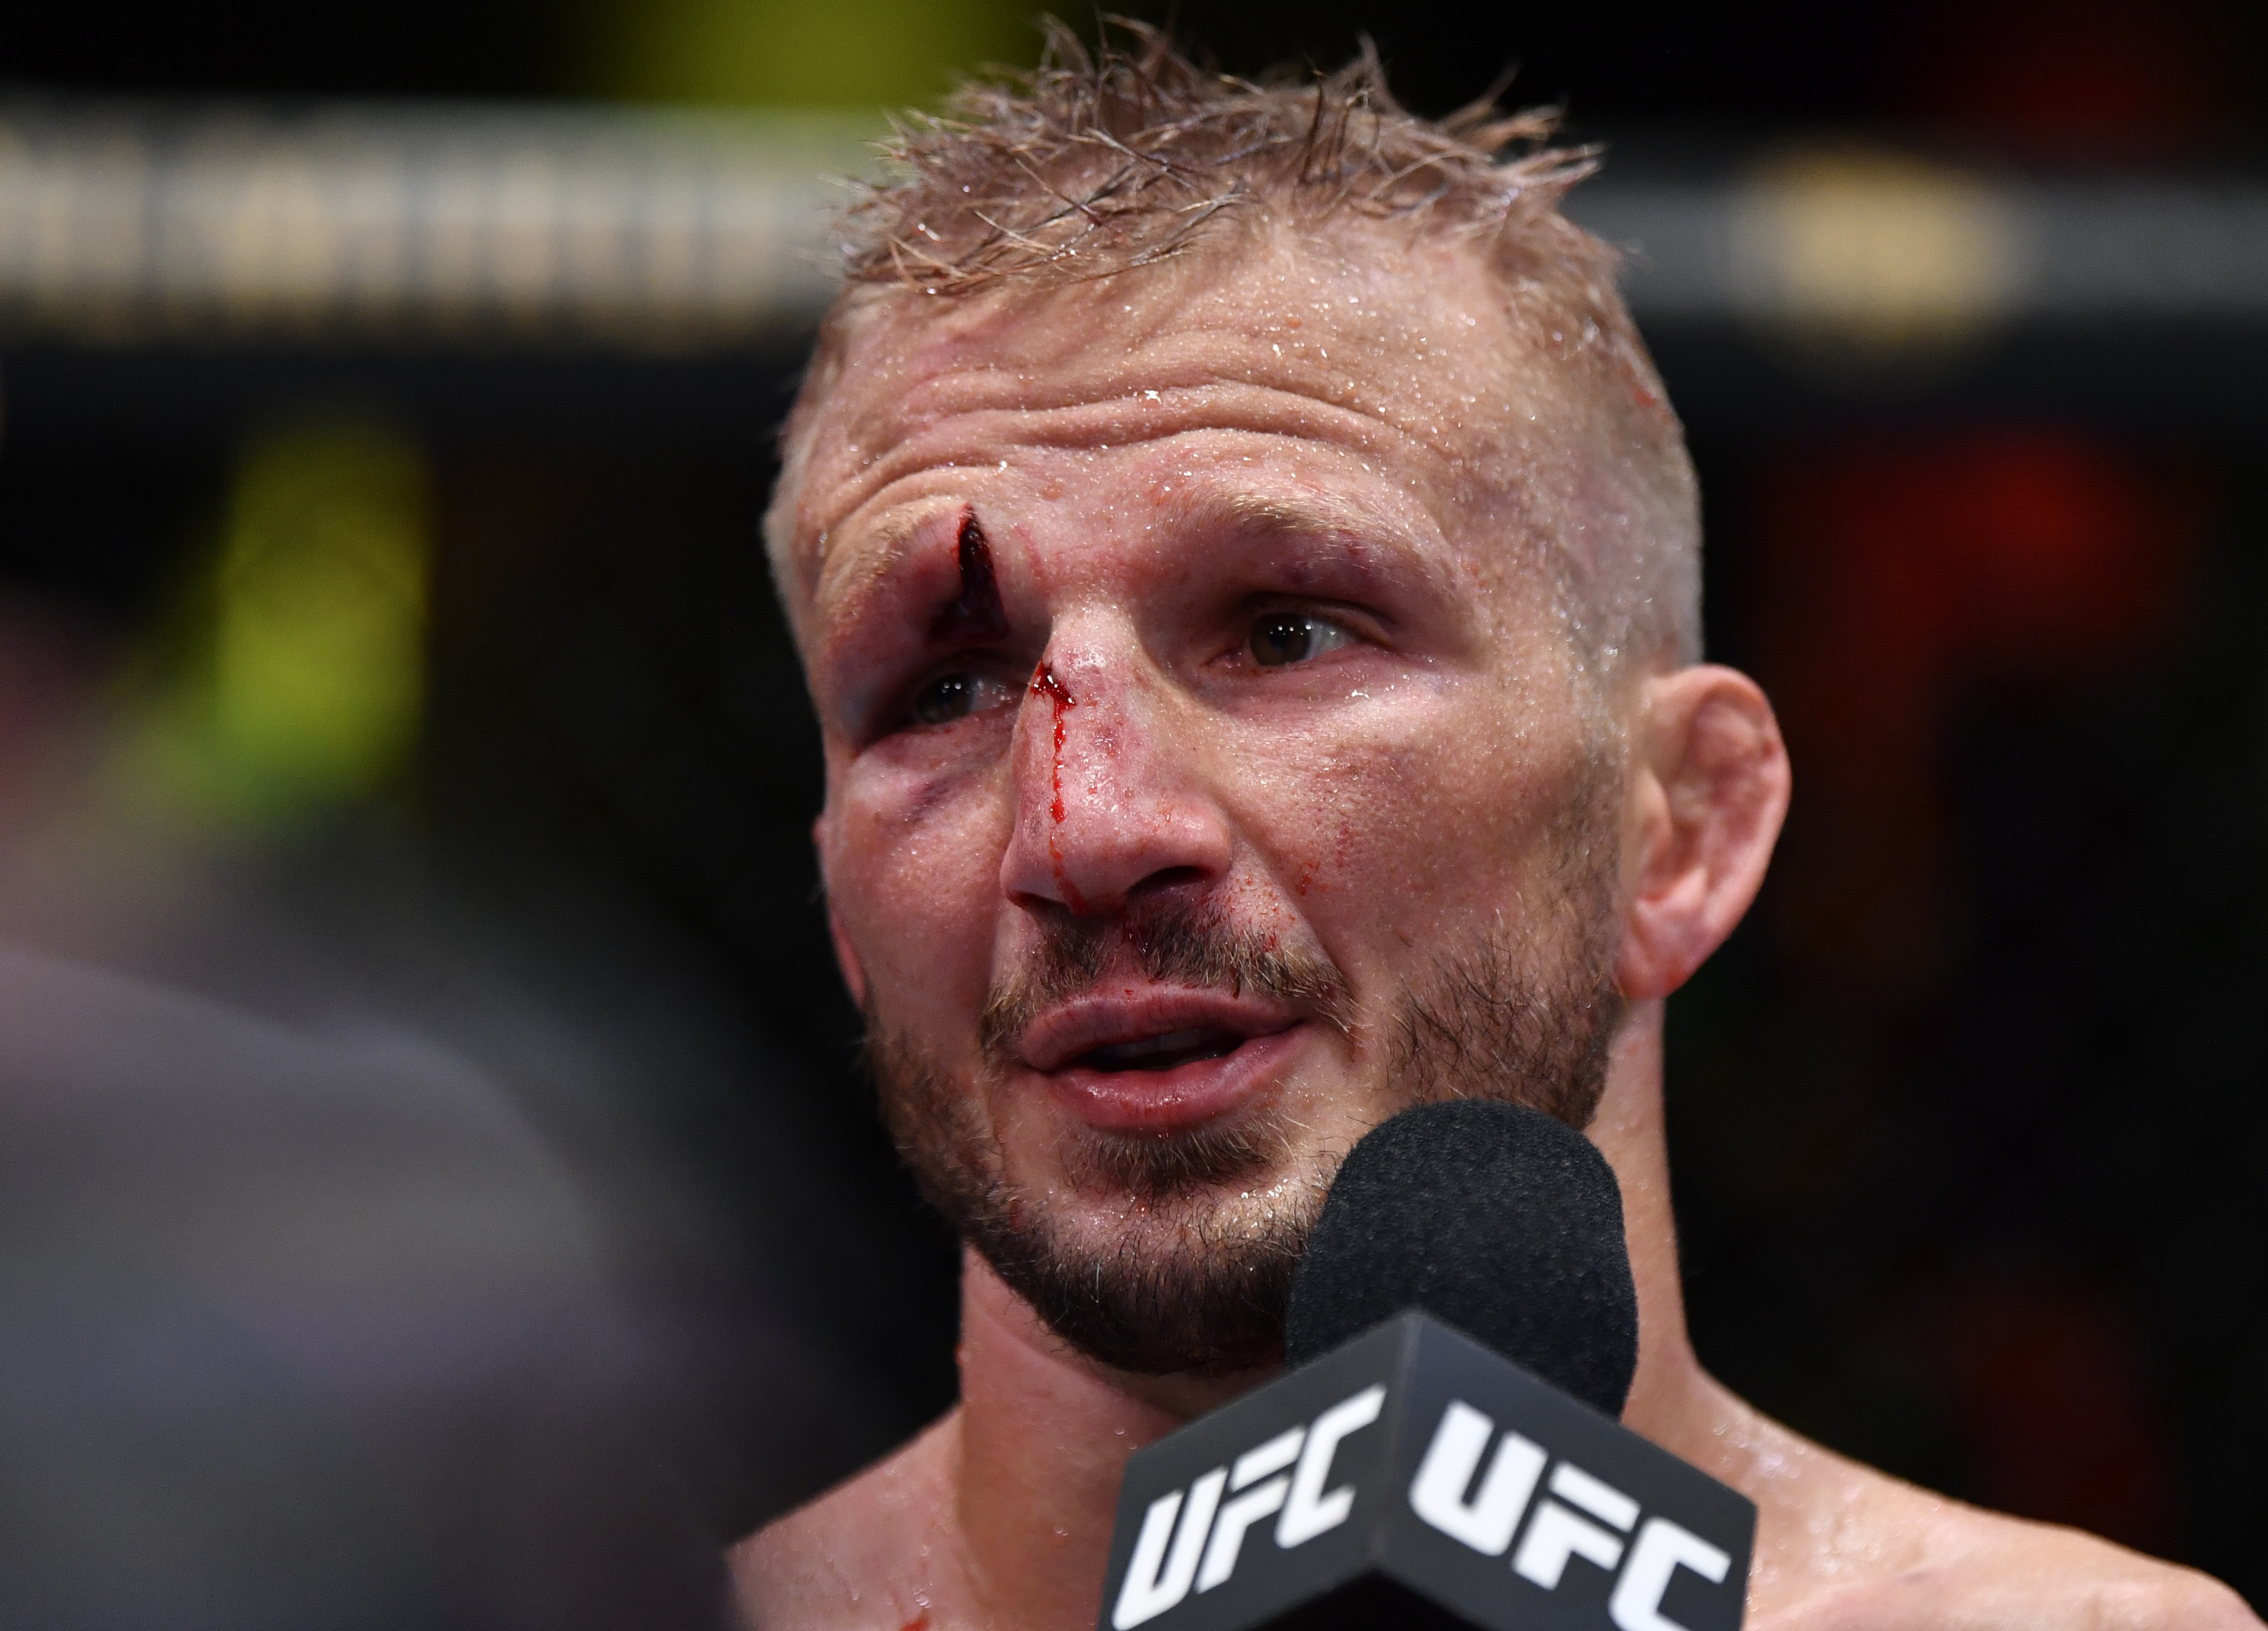 T.J. Dillashaw suffered a massive cut on Saturday at UFC Vegas 32 but was nonetheless allowed to fight on.